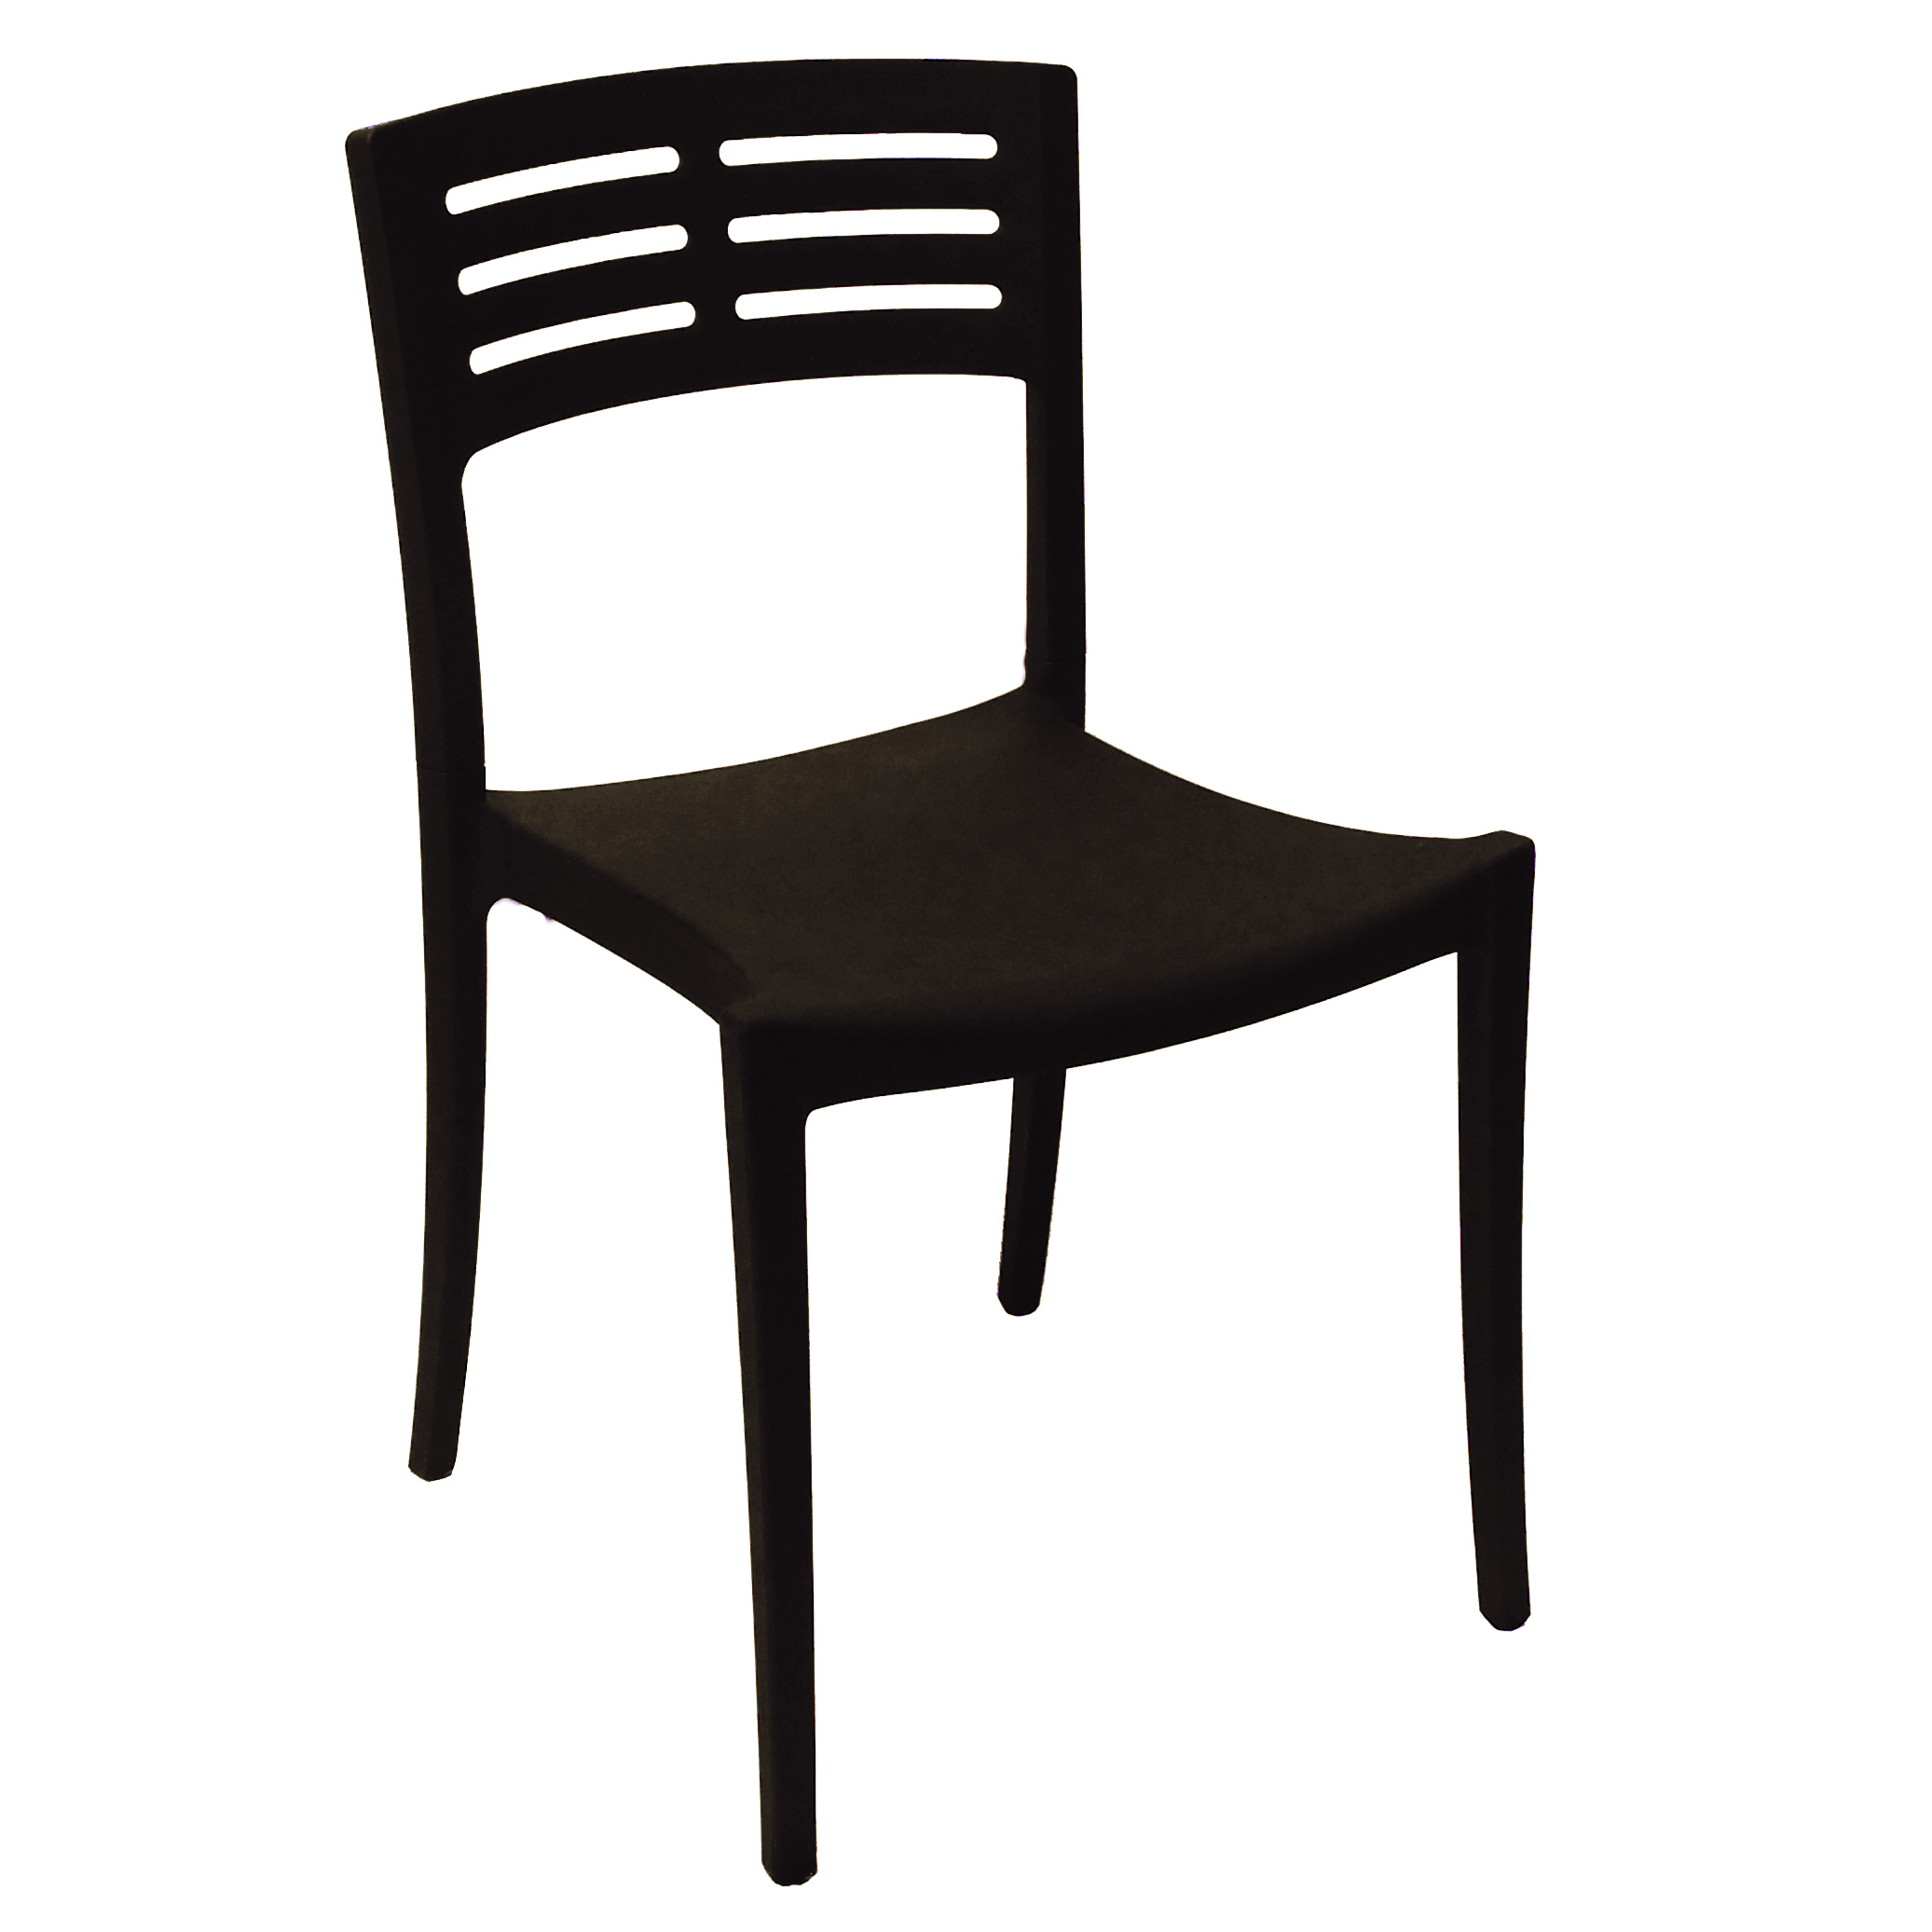 Grosfillex US738017 chair, side, stacking, outdoor